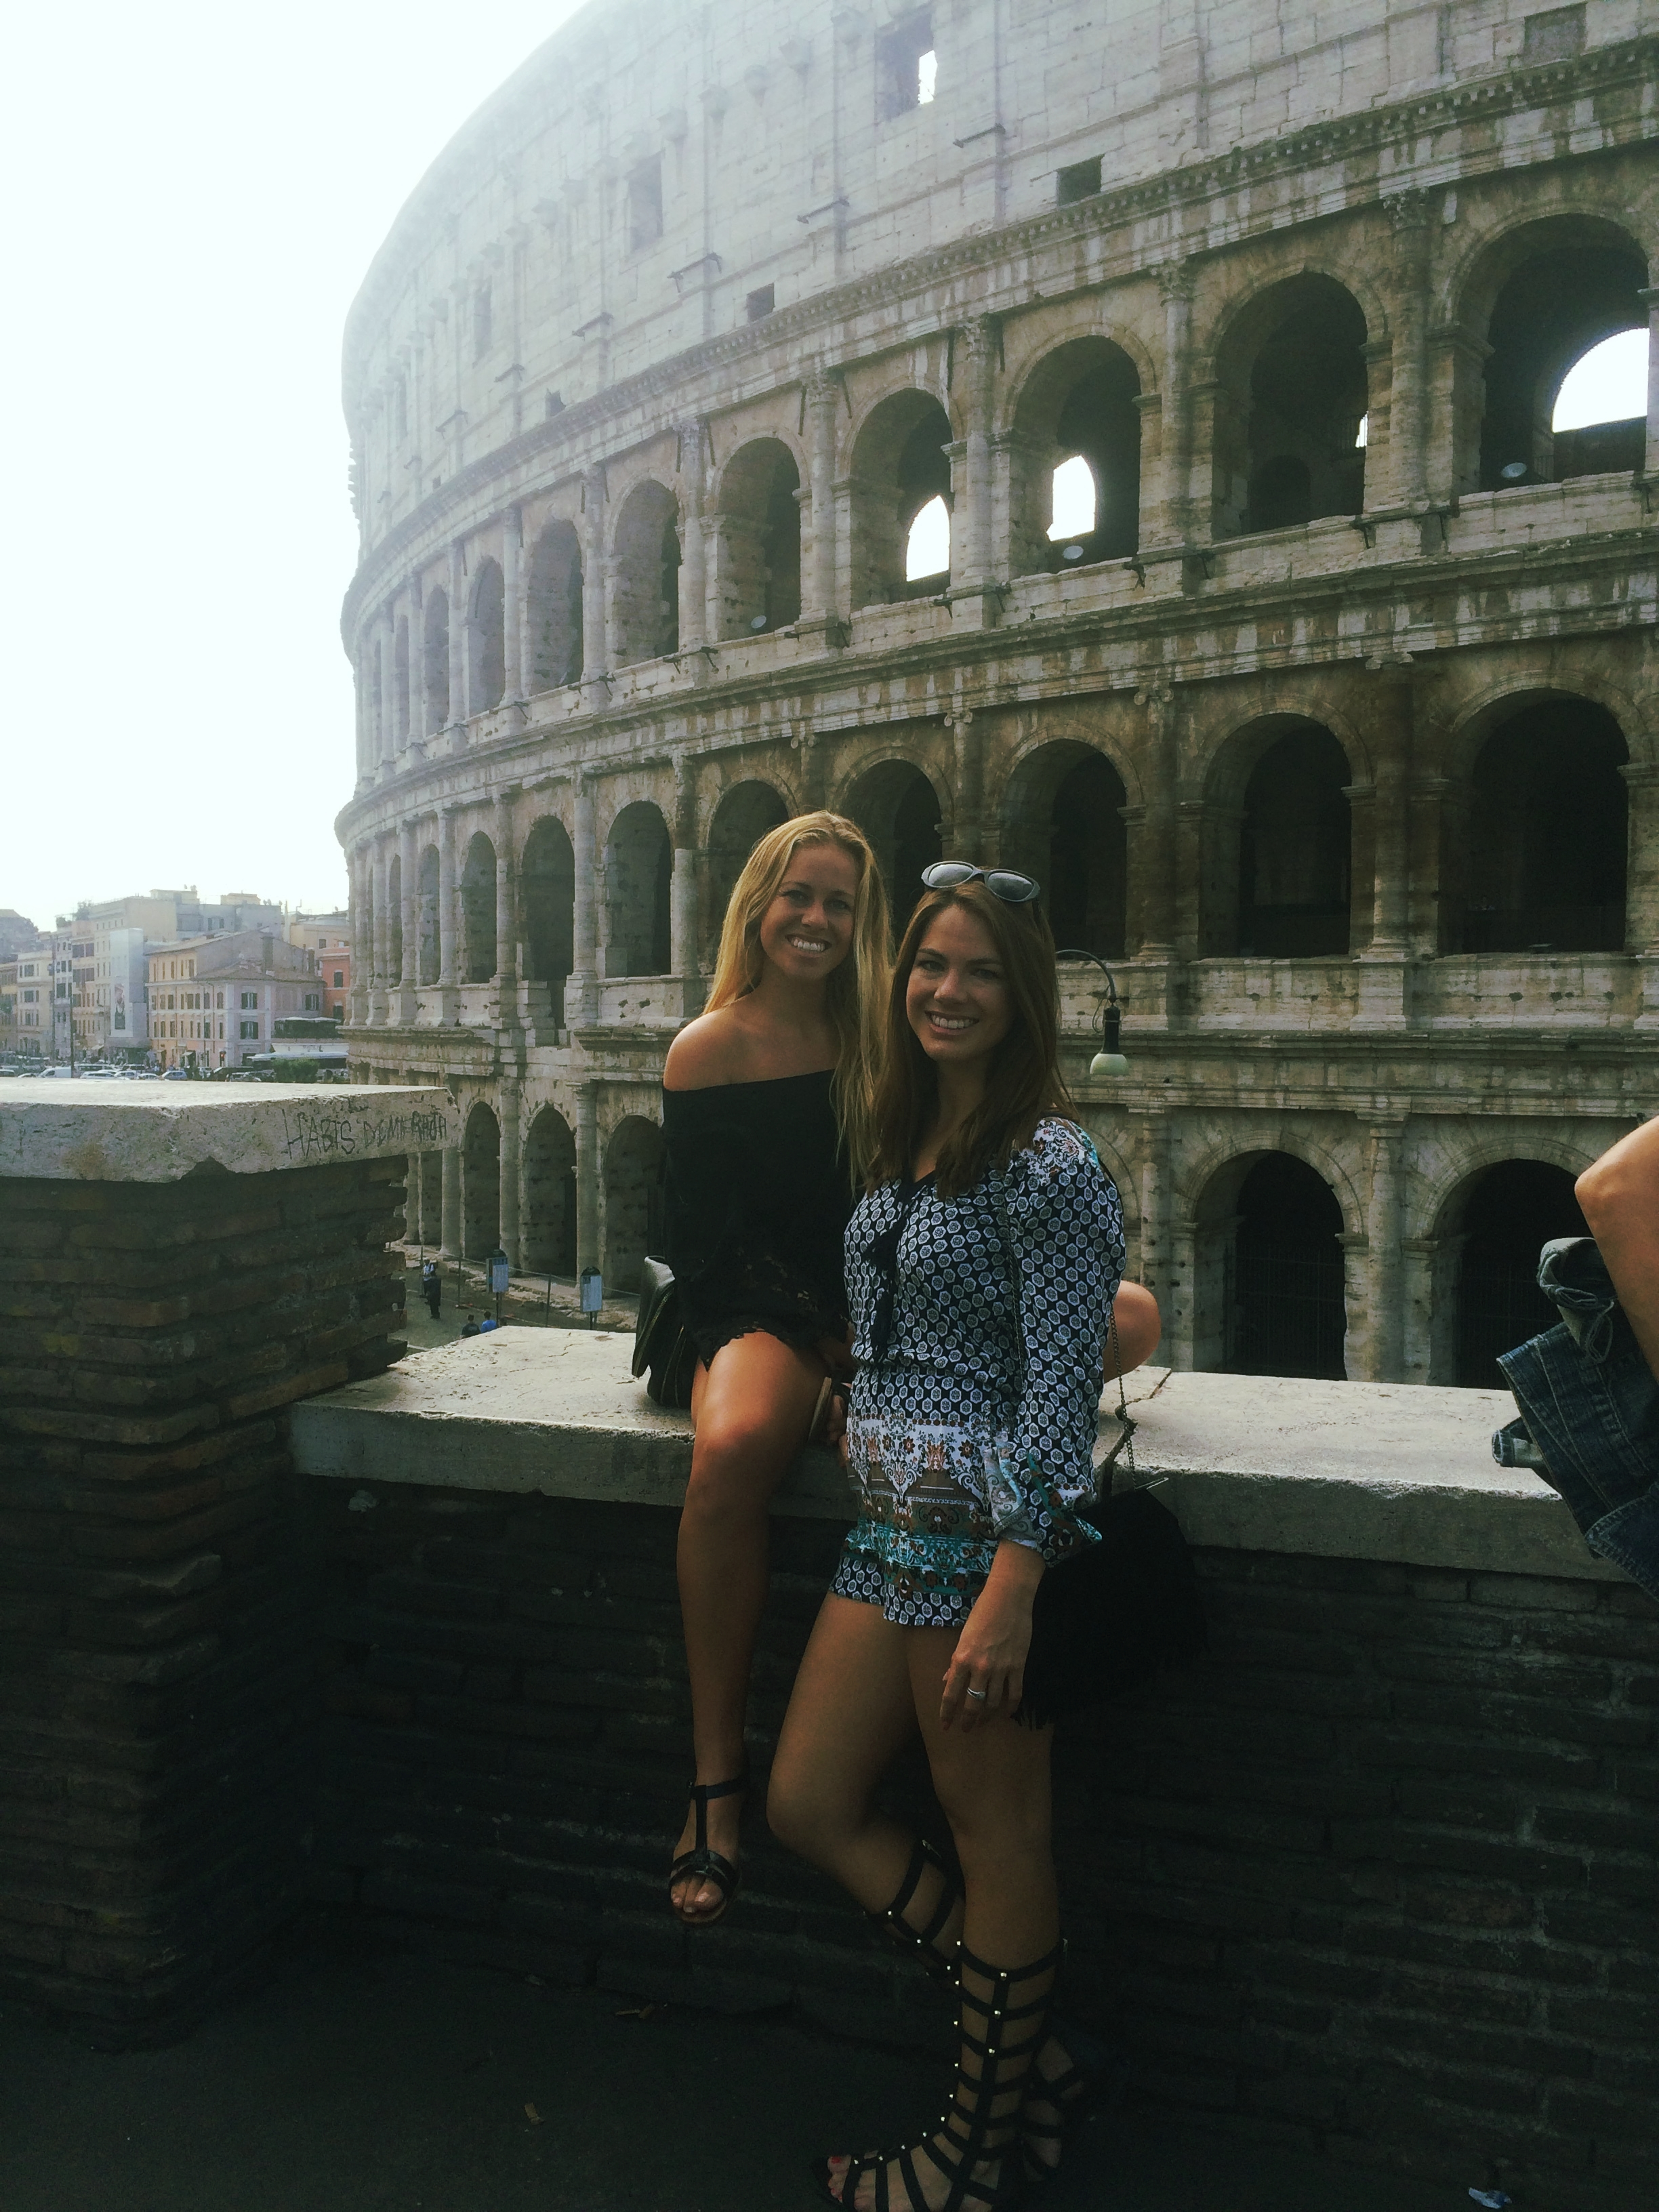 Hanging out next to the Colosseum